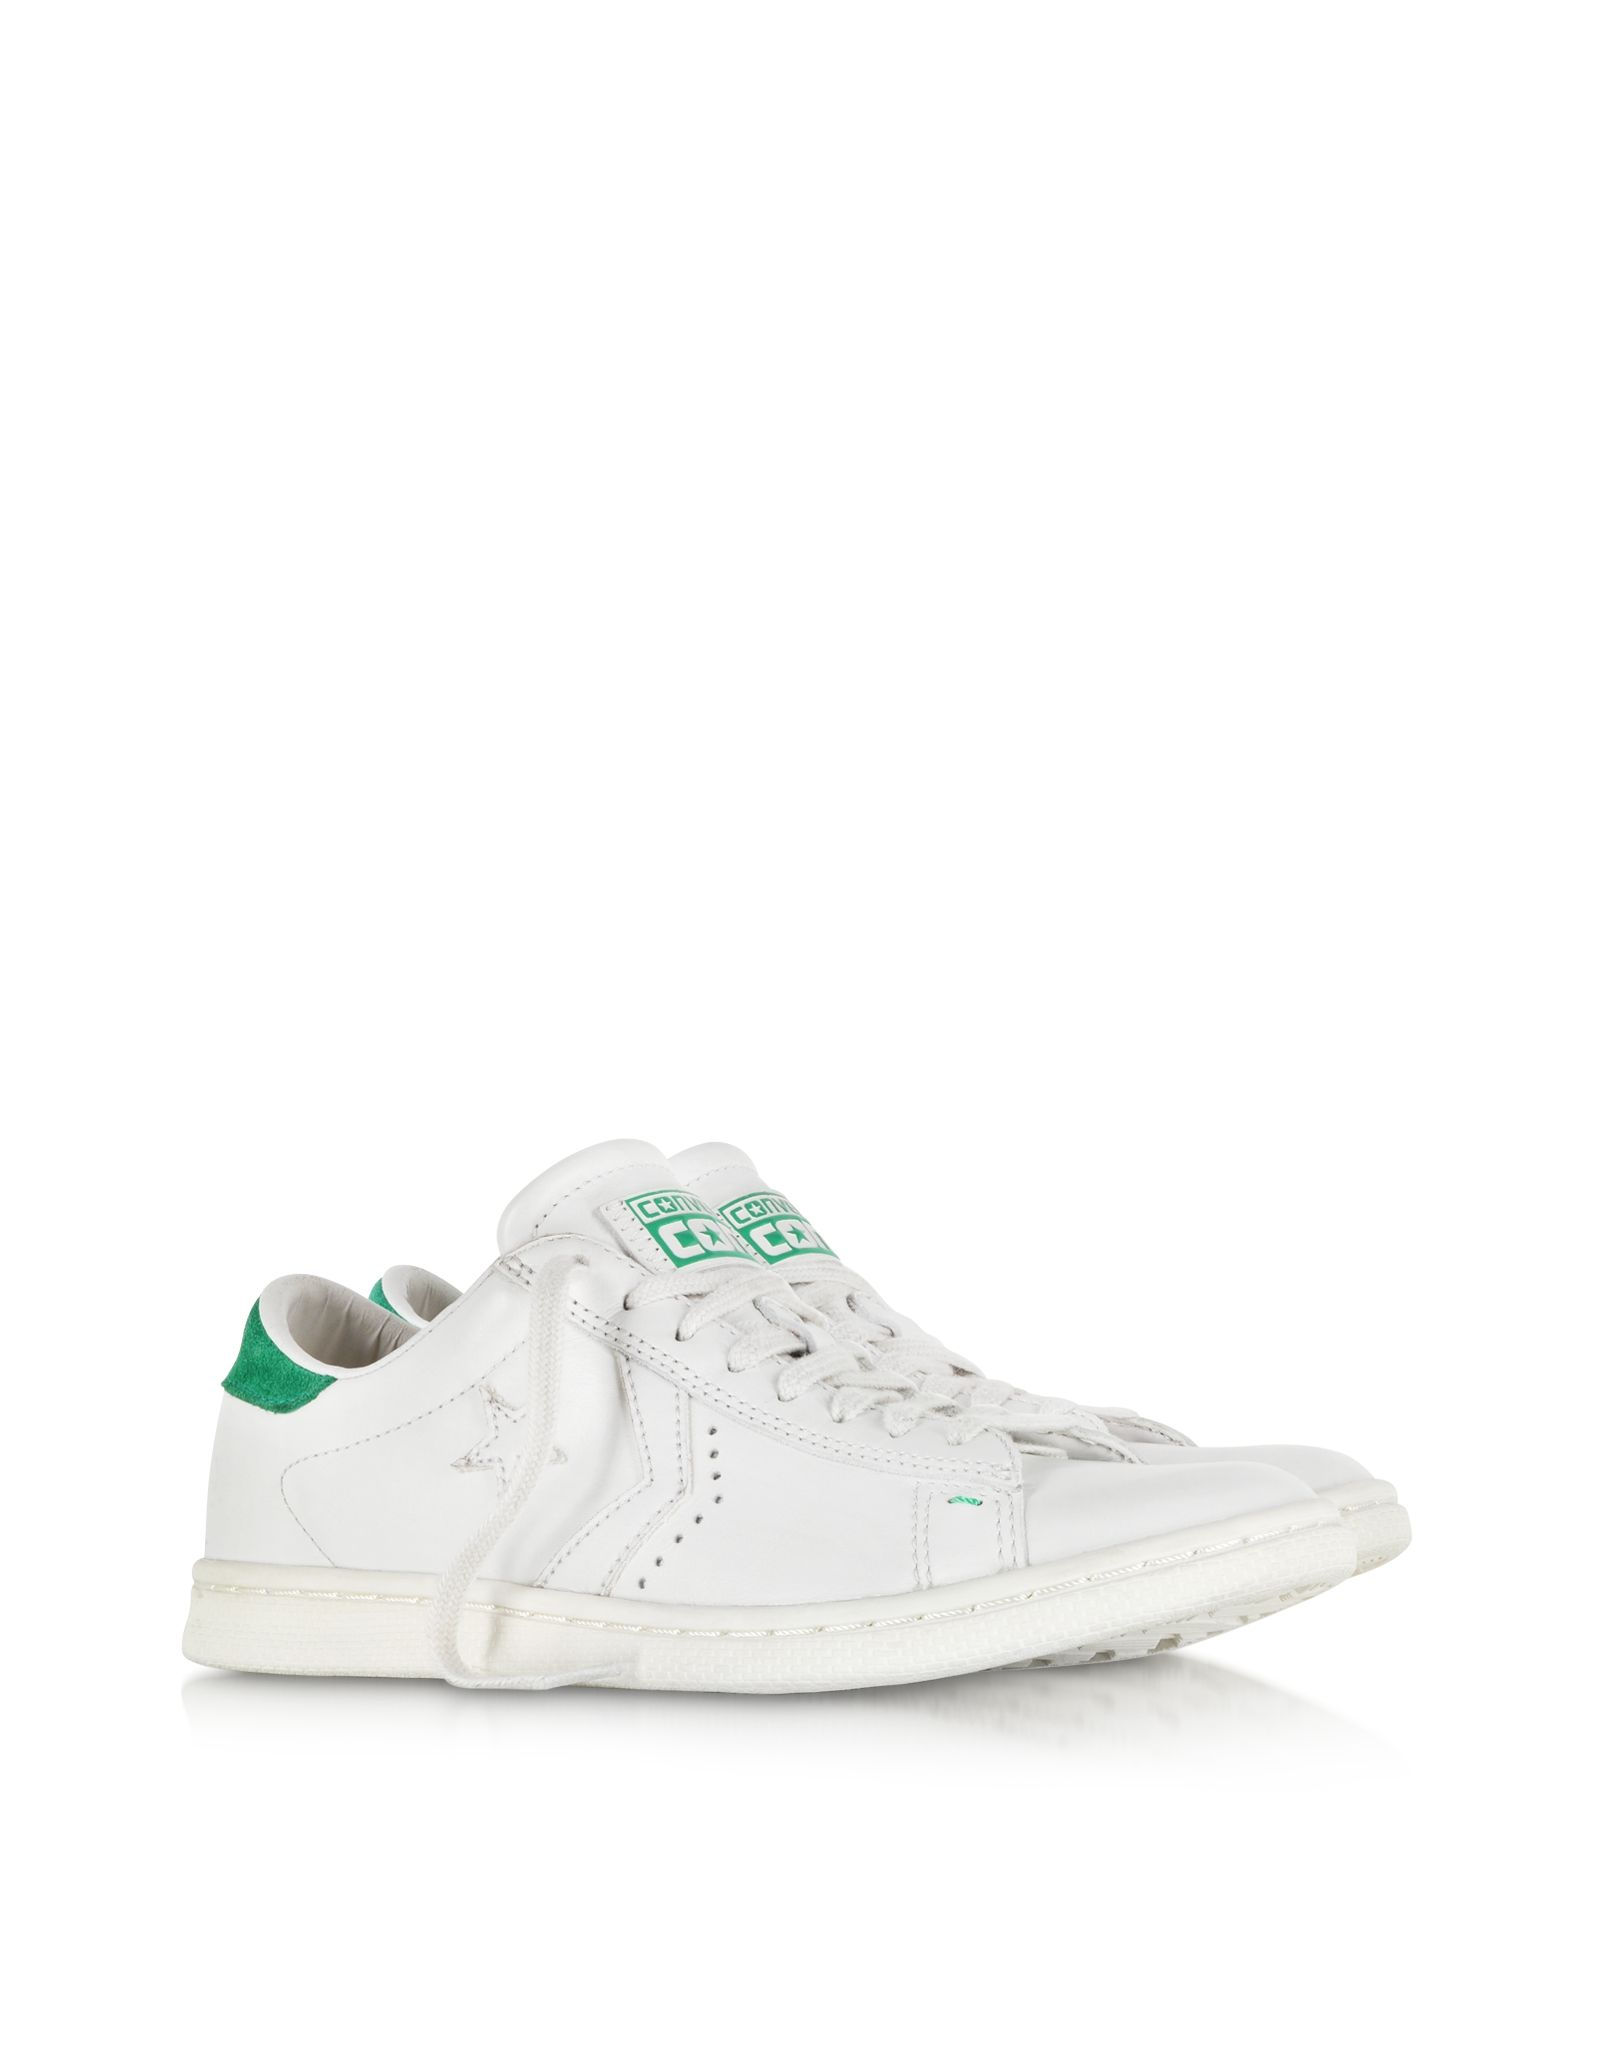 6f4cfe11b8d Converse Limited Edition Cons Pro Leather LP Ox White Dust and Green  Sneaker.